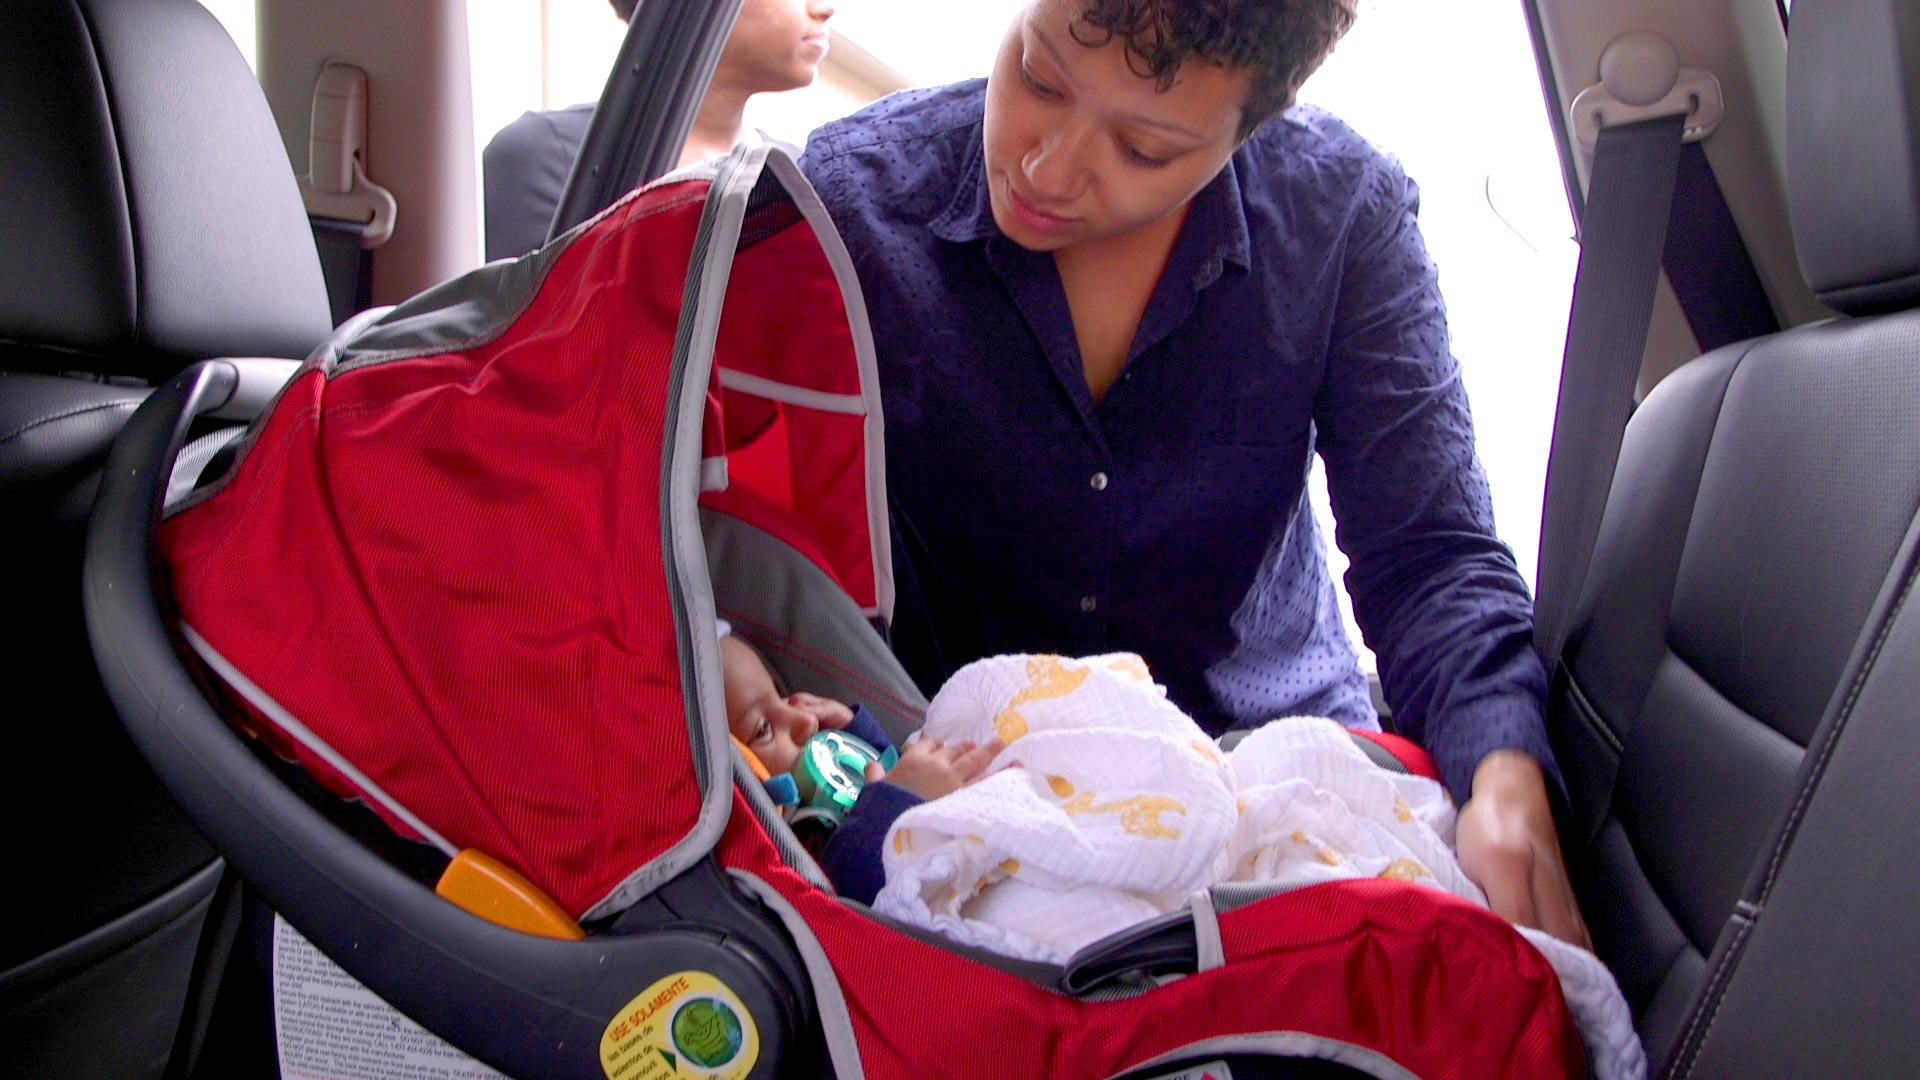 A guide of practicality: choosing a car seat by elizabeth reynolds.